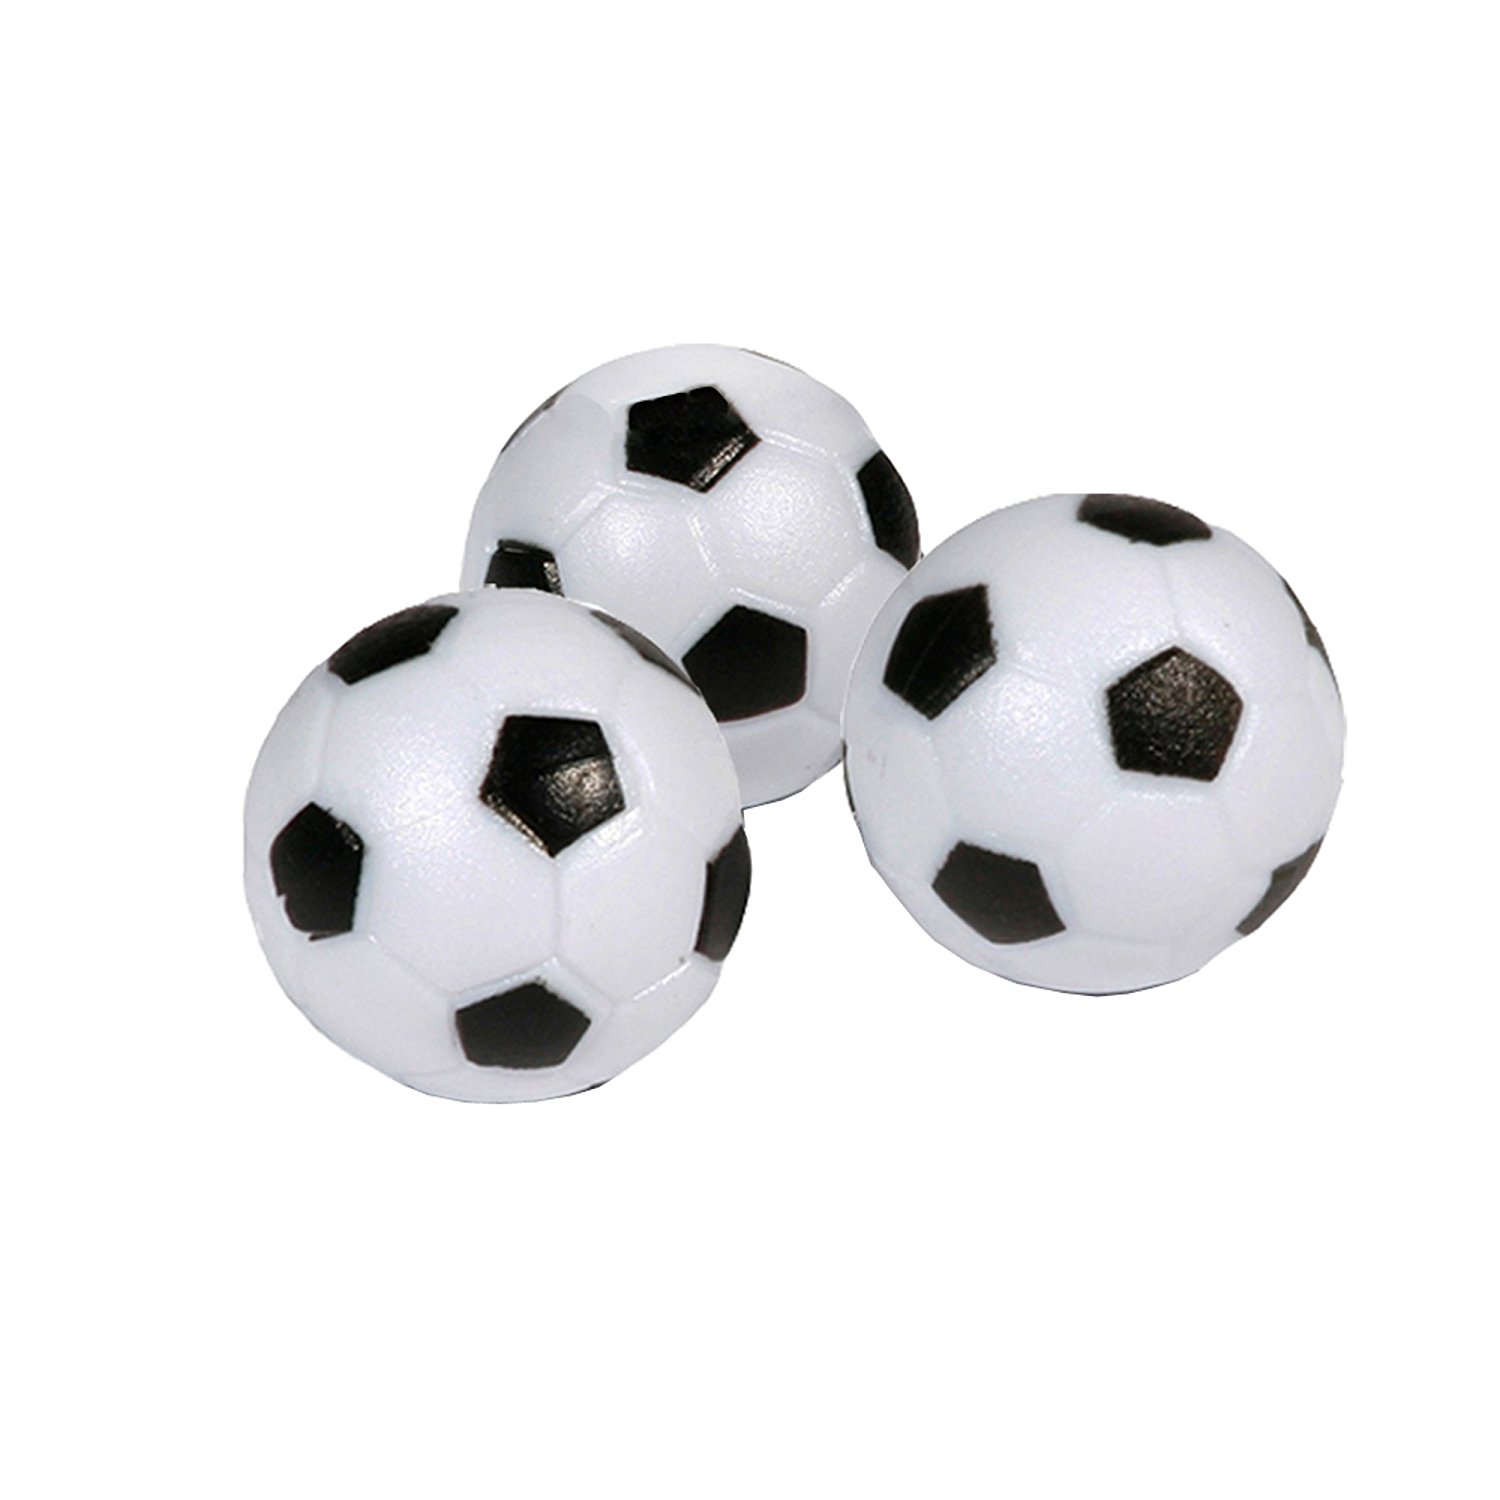 1500x1500 Hathaway Soccer Ball Style Foosballs (Pack Of 3